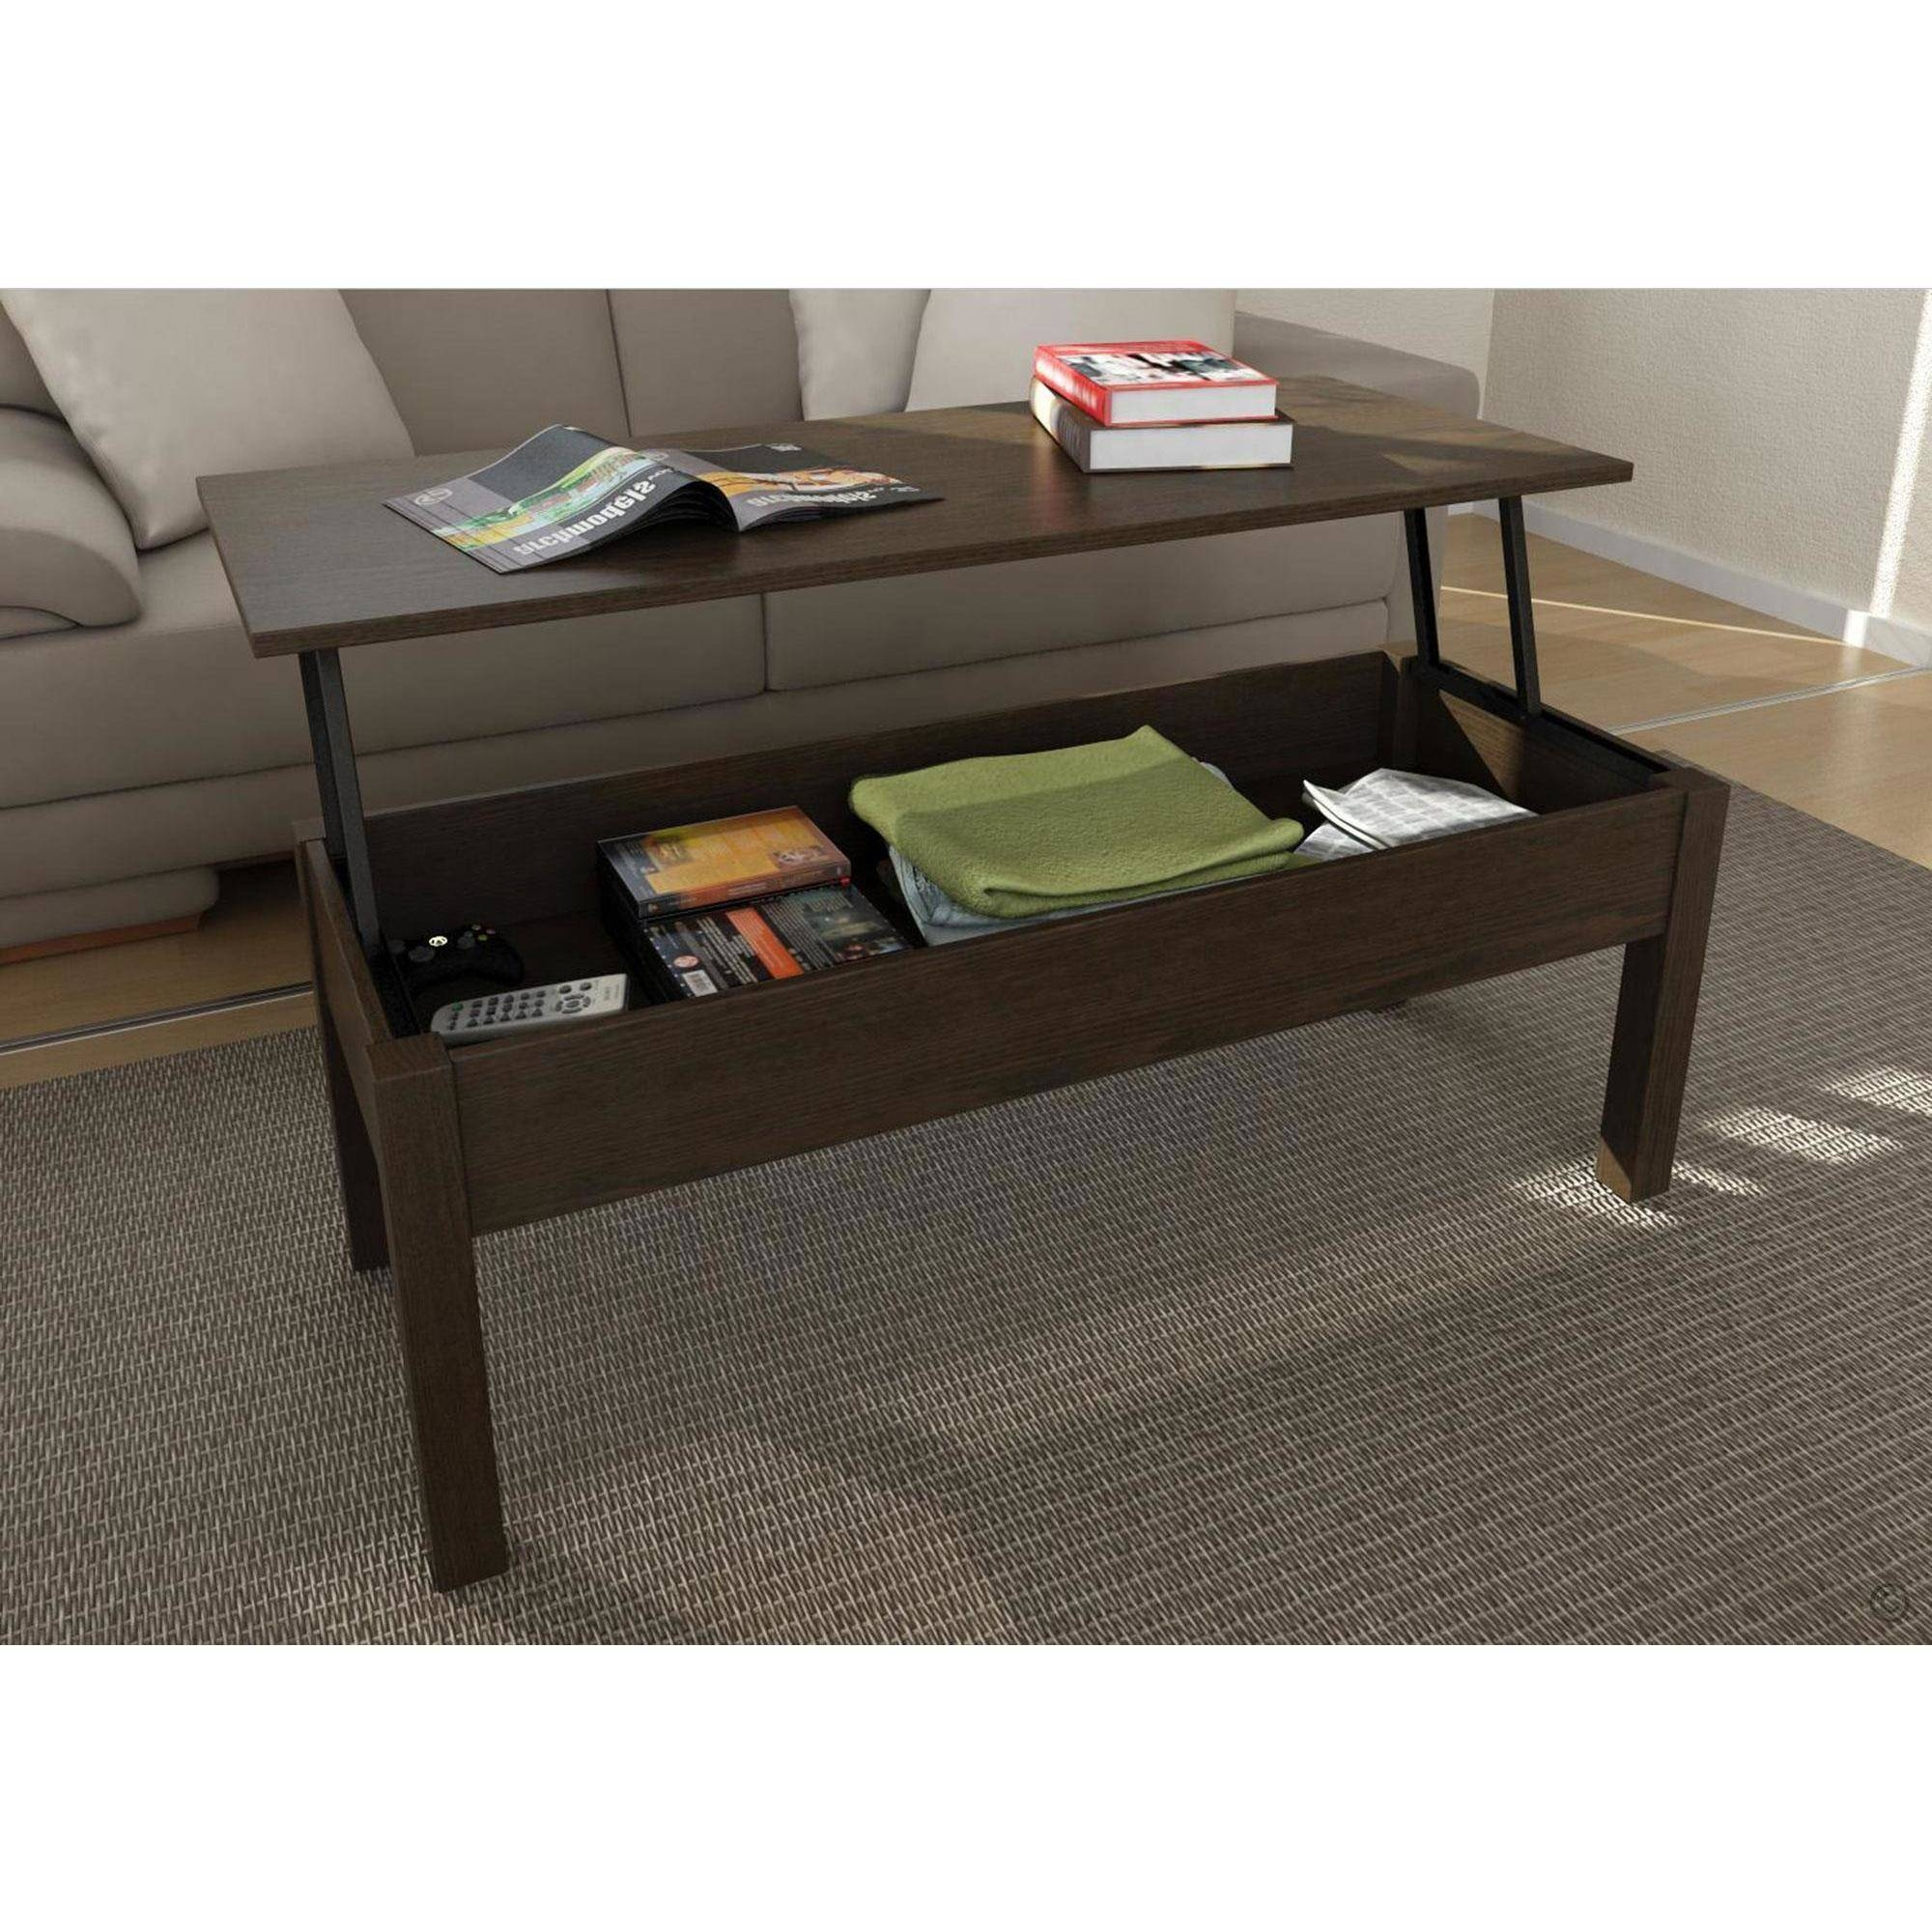 Mainstays Lift Top Coffee Table, Multiple Colors   Walmart Intended For Coffee Tables With Lift Up Top (Photo 2 of 30)